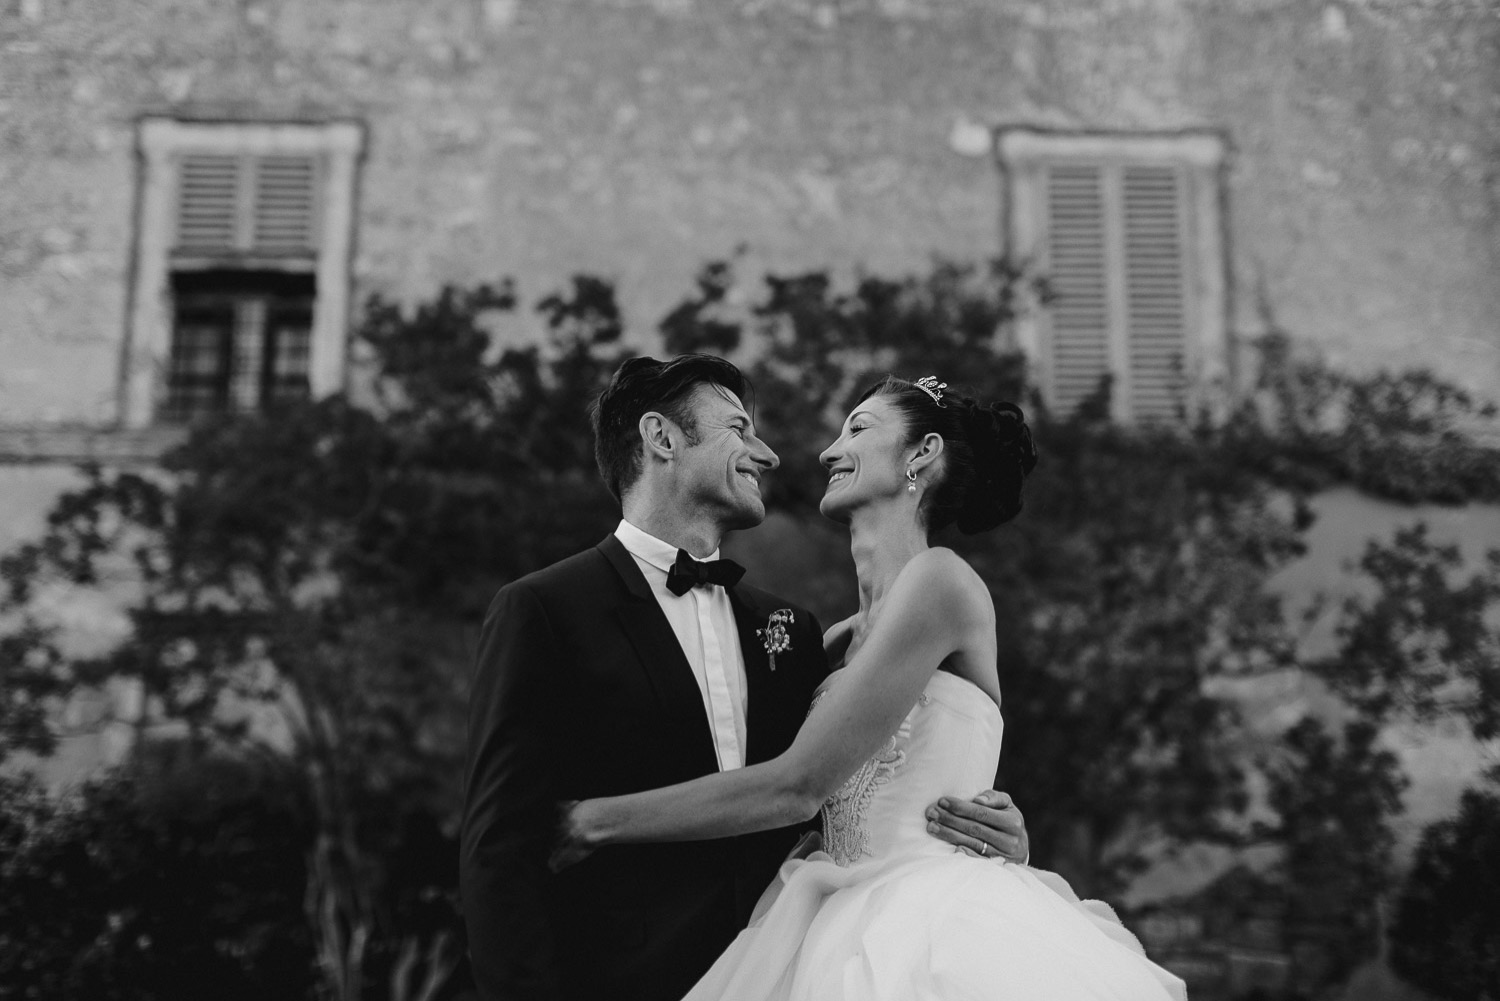 Bride and groom portrait in B/W